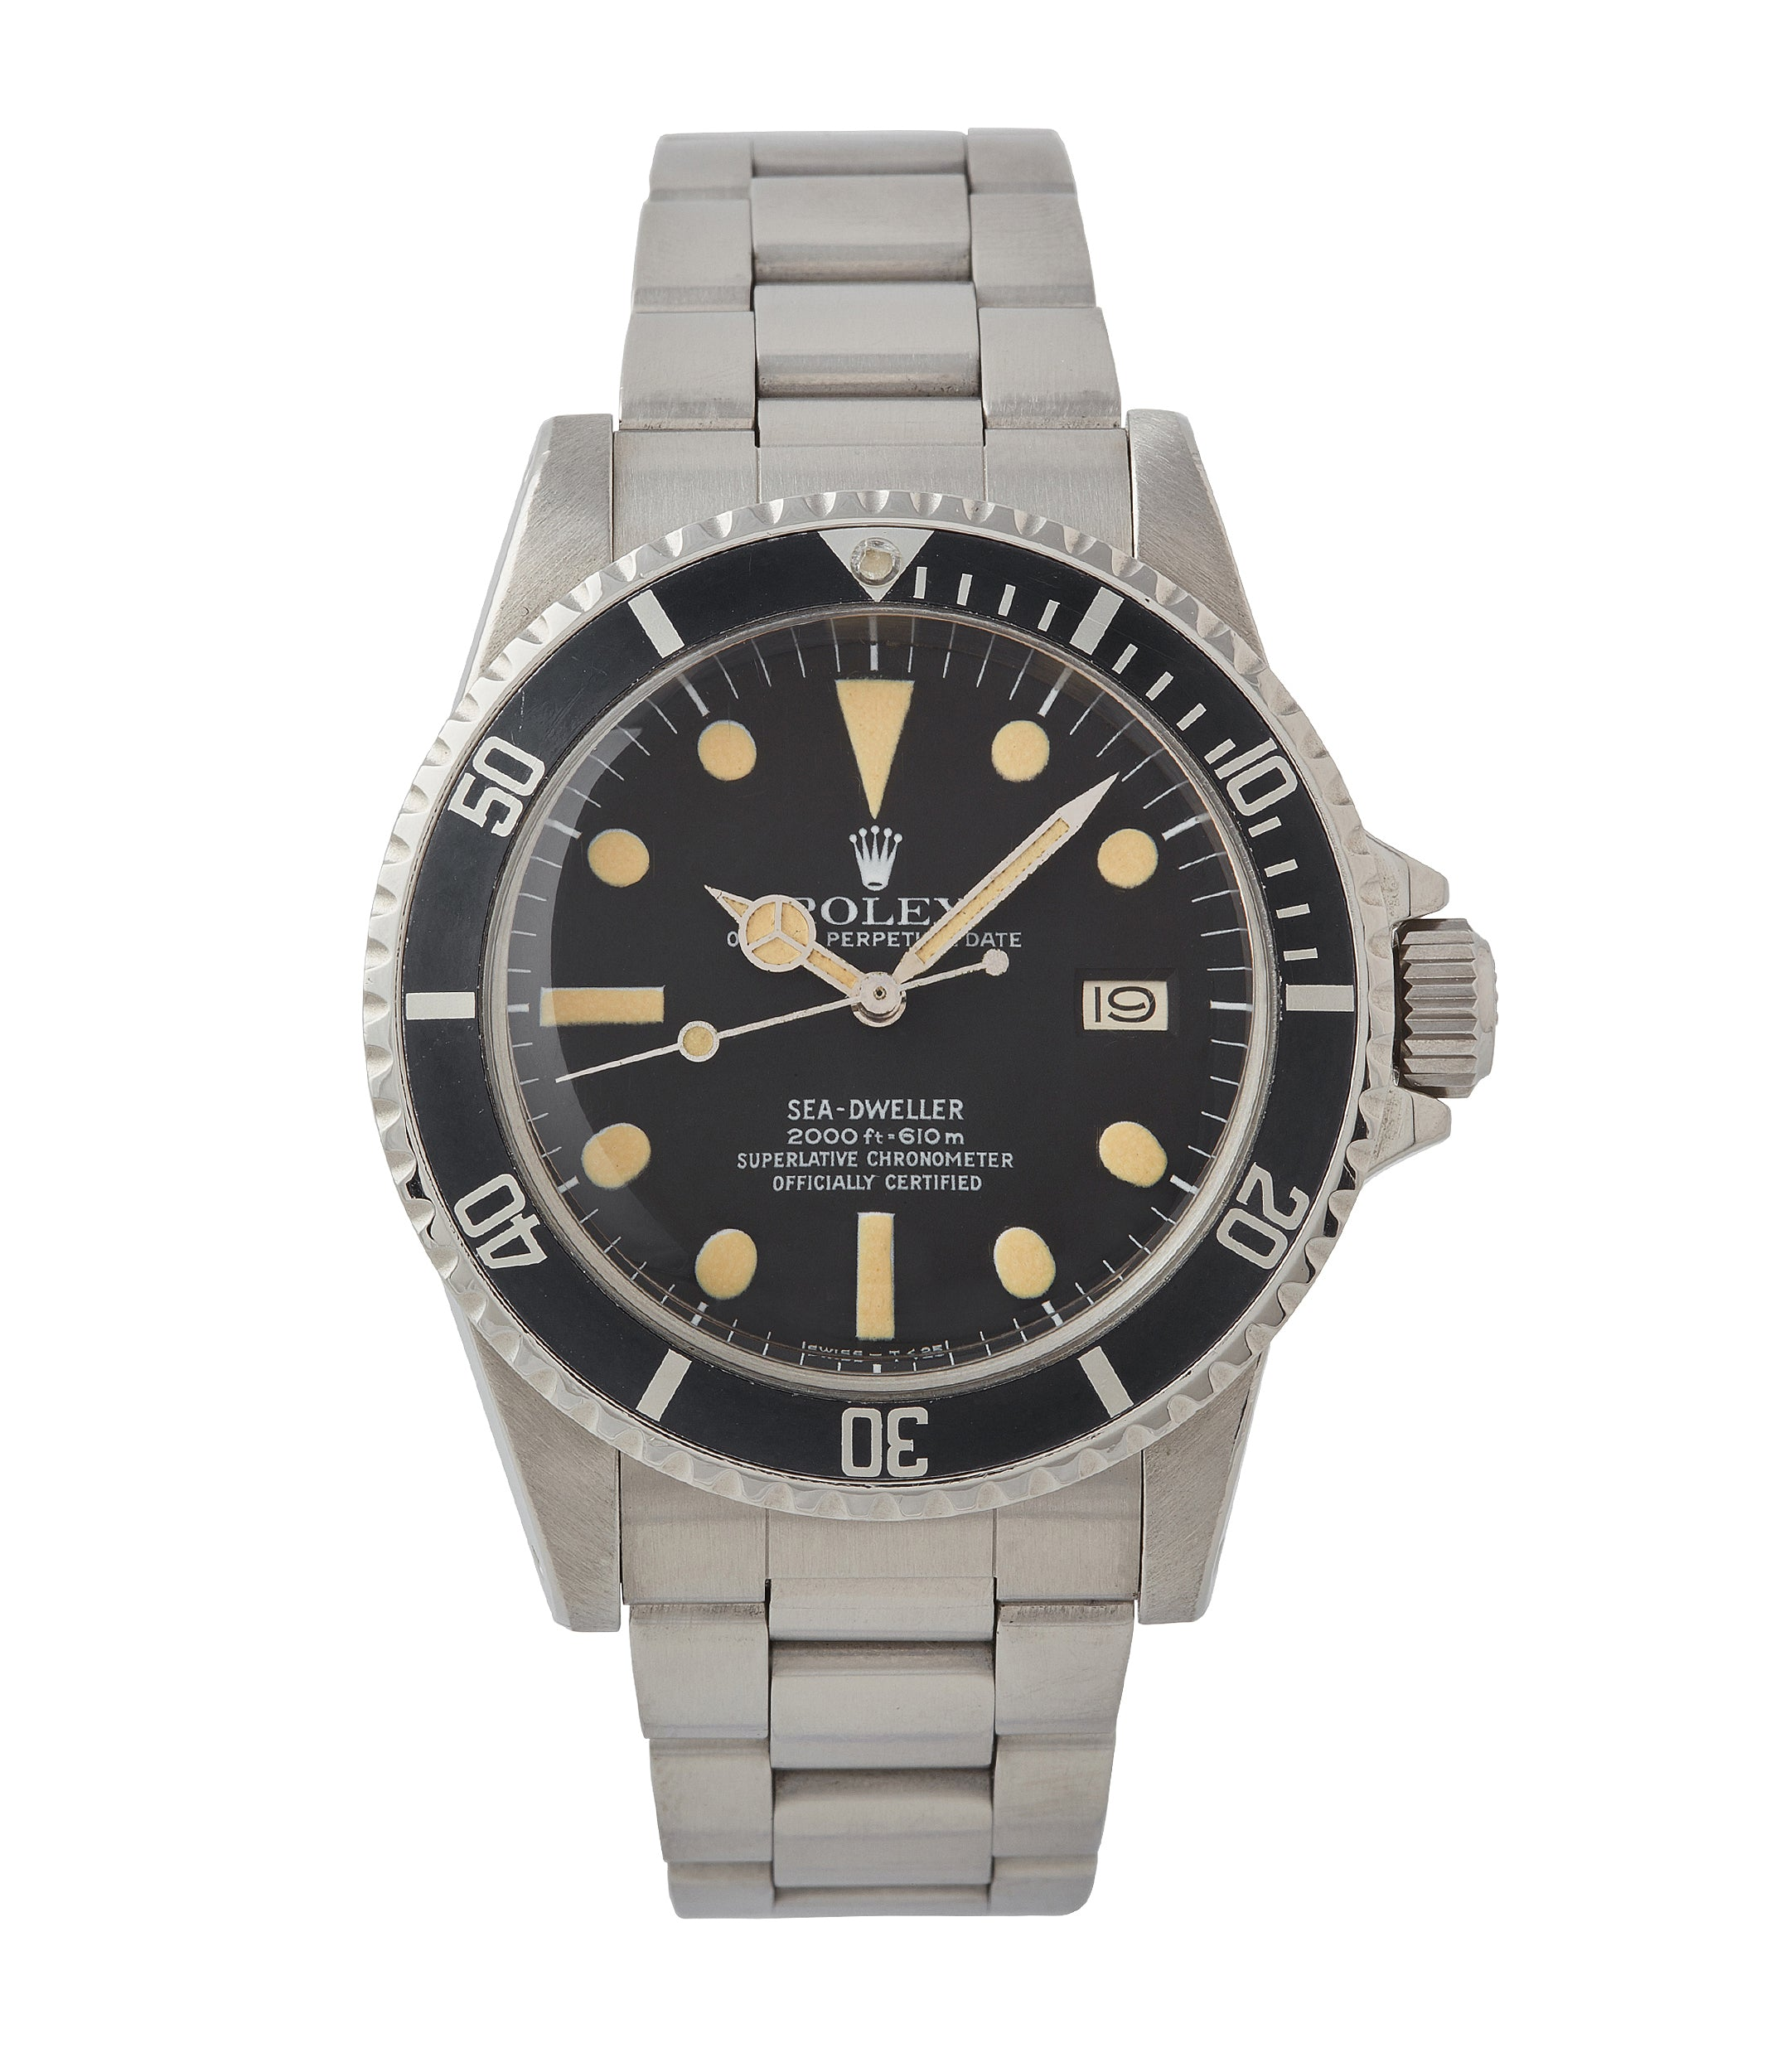 Buy Rolex Sea-Dweller Great White 1665